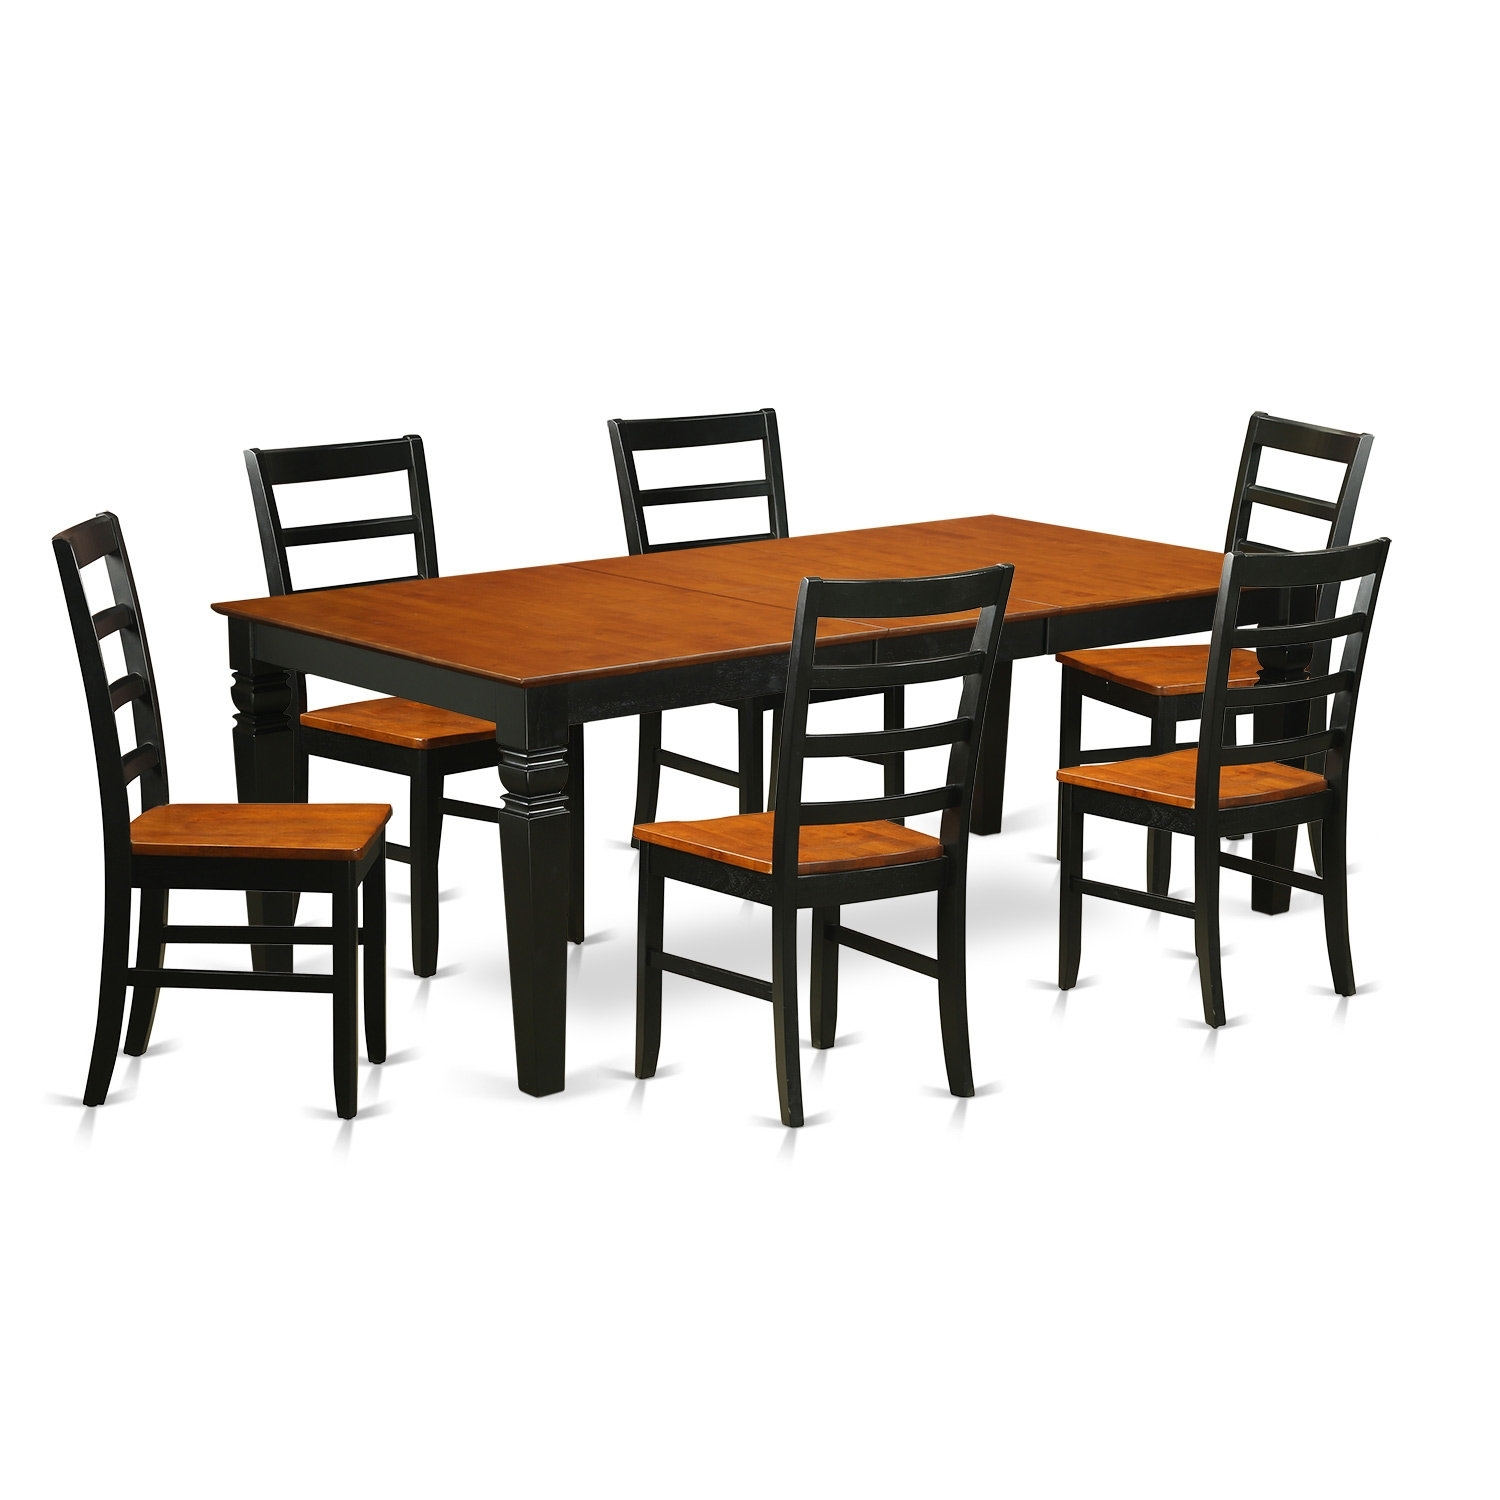 Wooden Importers Logan 7 Piece Dining Set | Wayfair In Most Current Logan 7 Piece Dining Sets (Image 20 of 20)